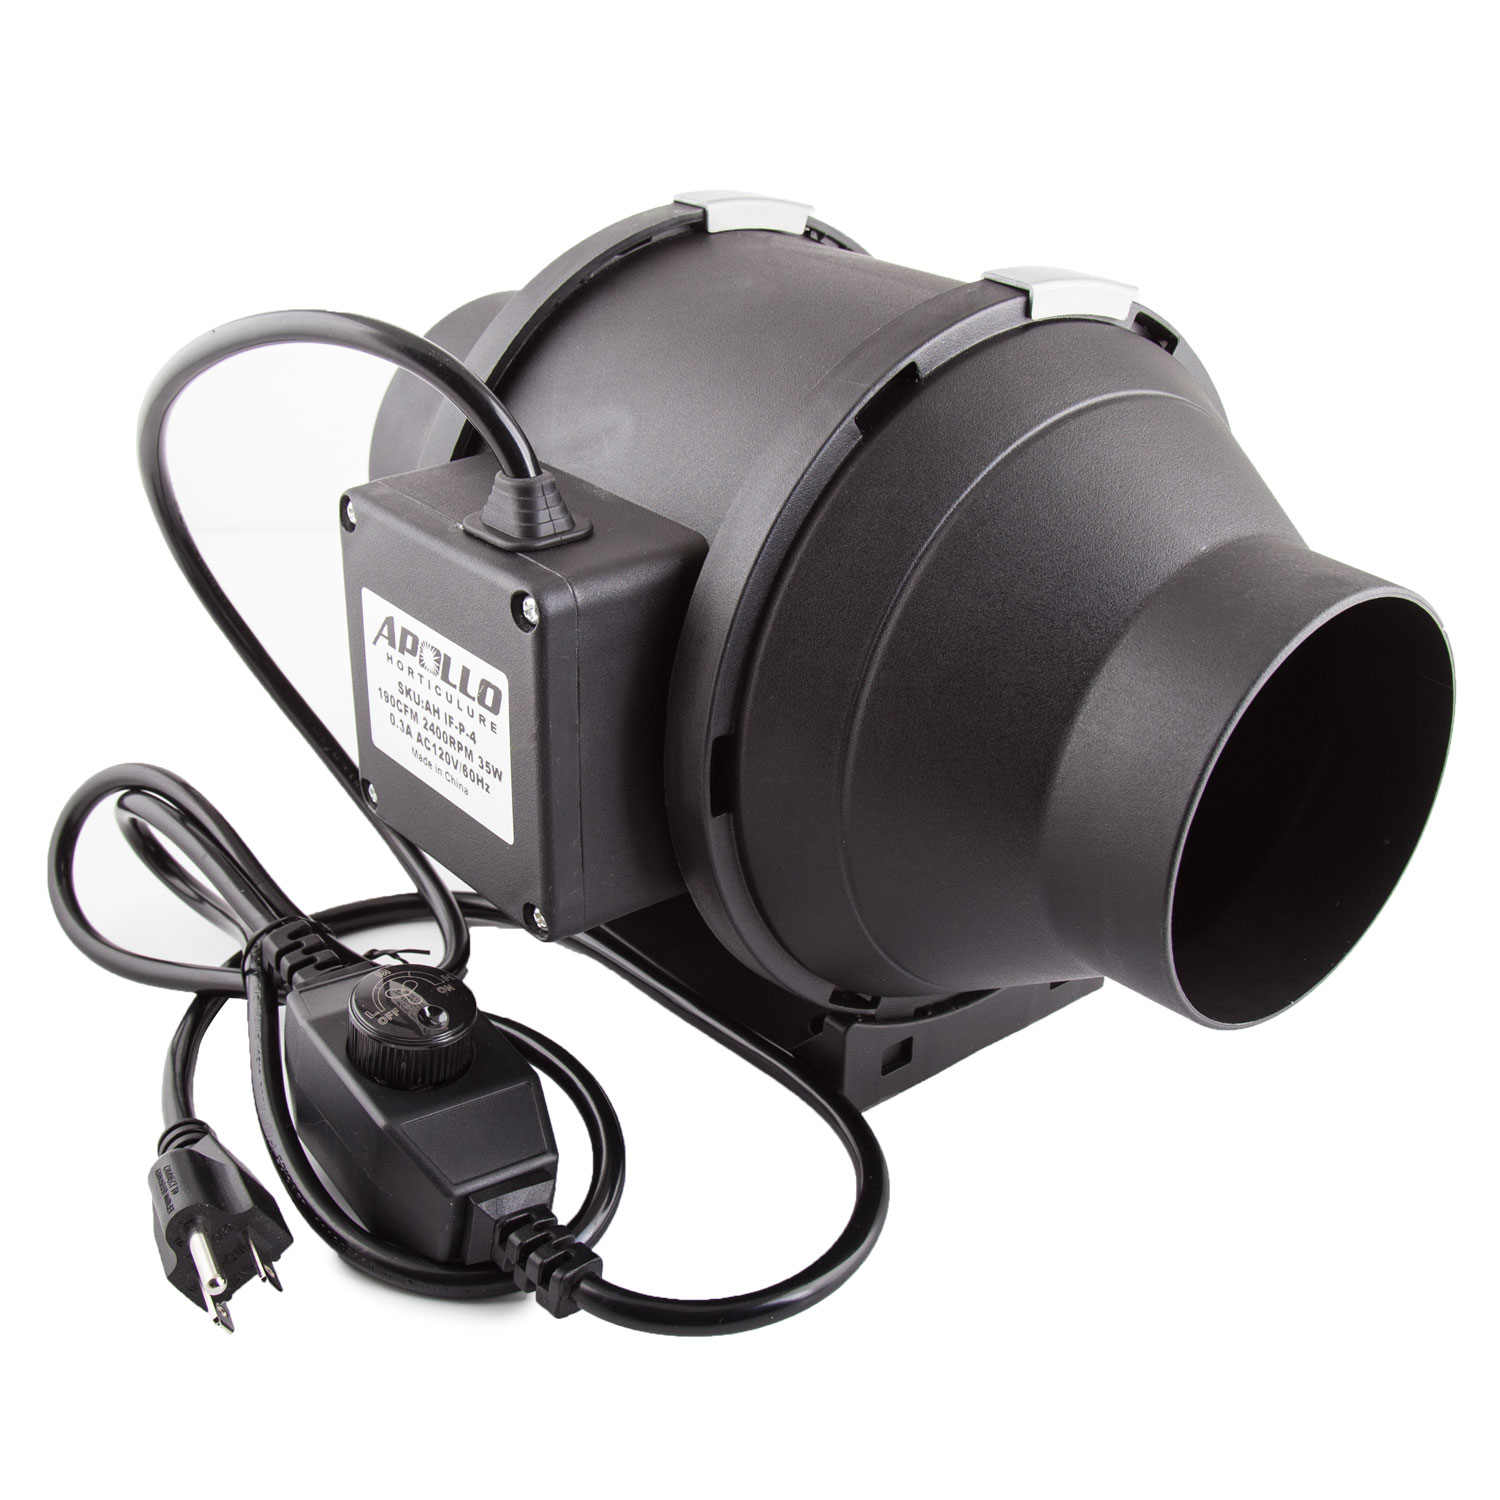 "Apollo Horticulture 4"" Inch 190 CFM Inline Duct Fan with Built in Variable Speed Controller for Ventilation"